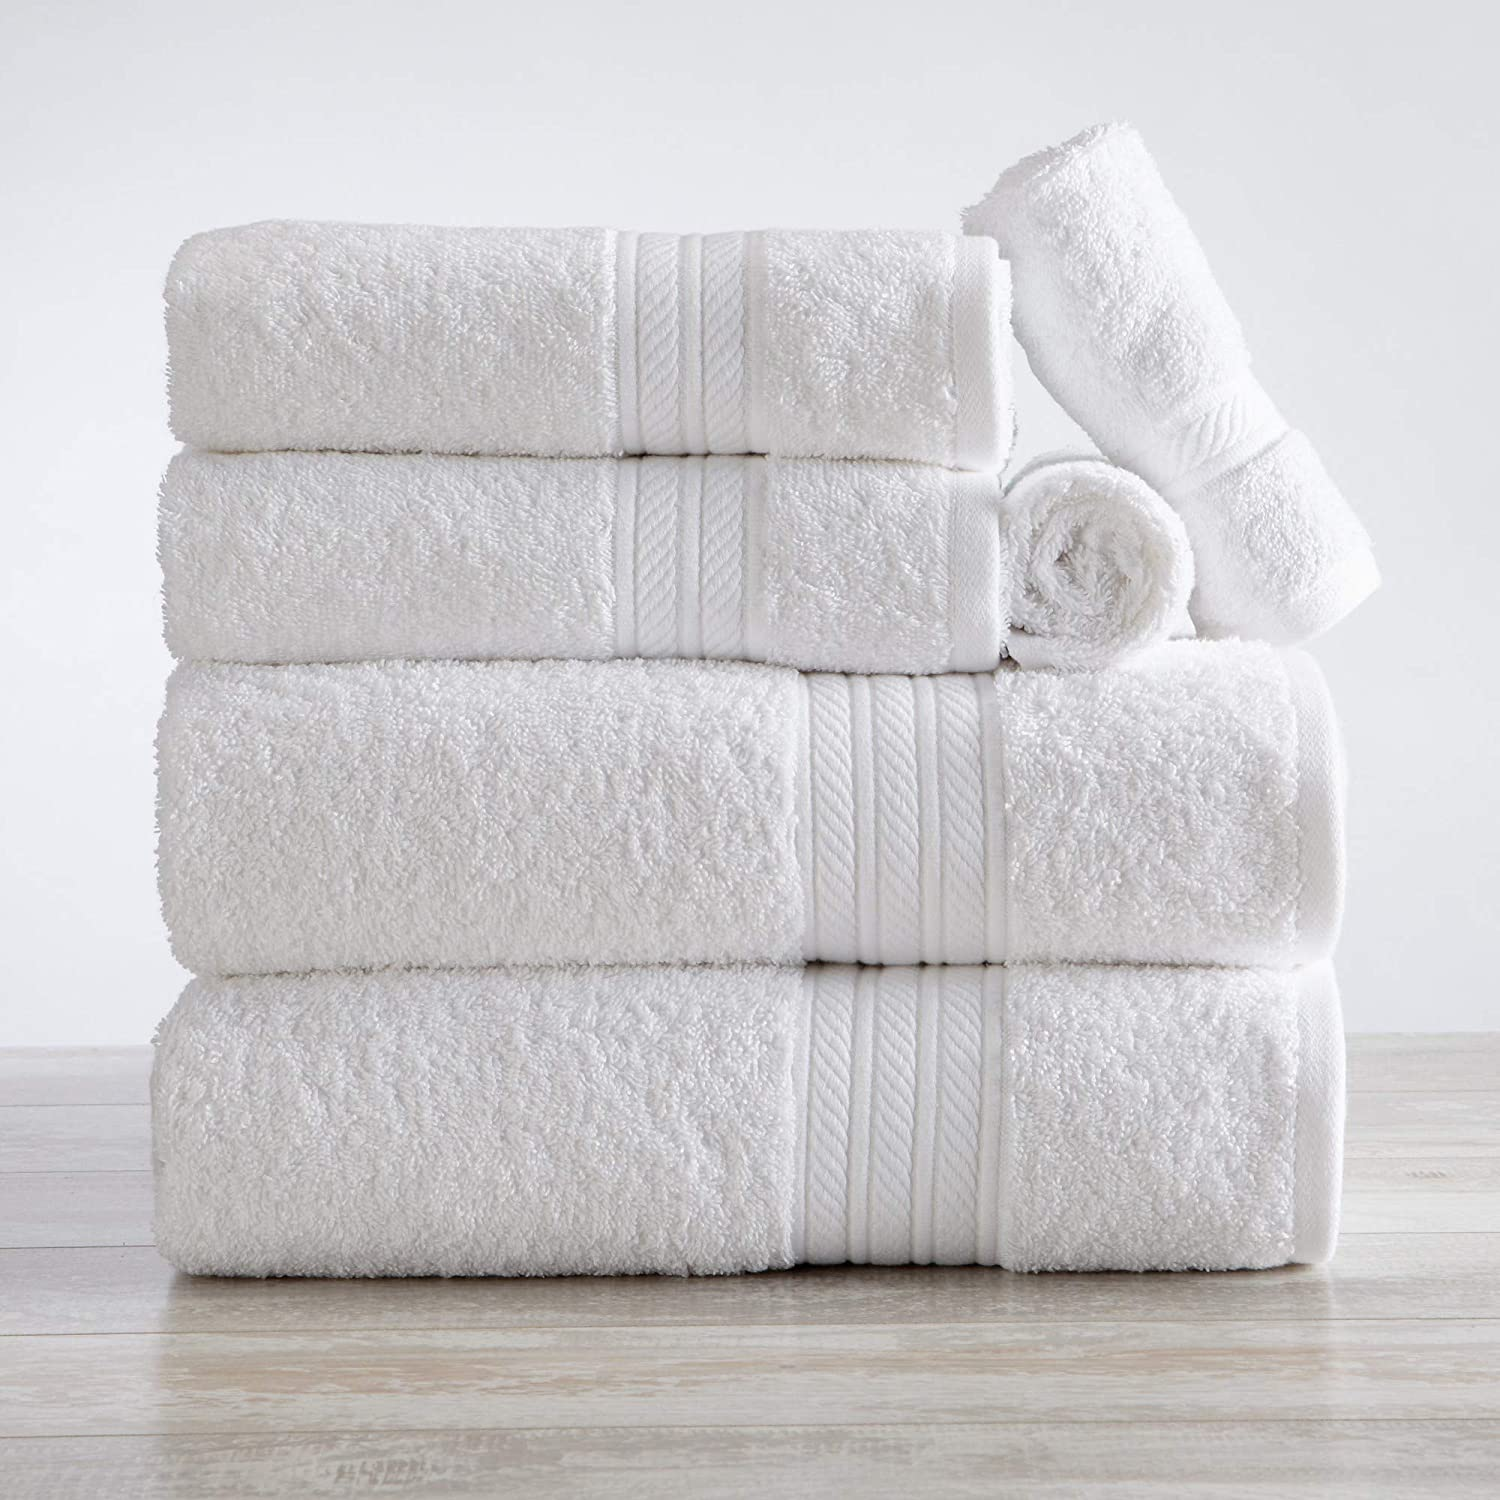 Great Bay Home 6-Piece Towel Set. Eco-Friendly Bathroom Towels. Woven Solid Color Detail Absorbent Towels. Set Includes 2 Bath, 2 Hand, and 2 Wash. PureSoft Collection (White)